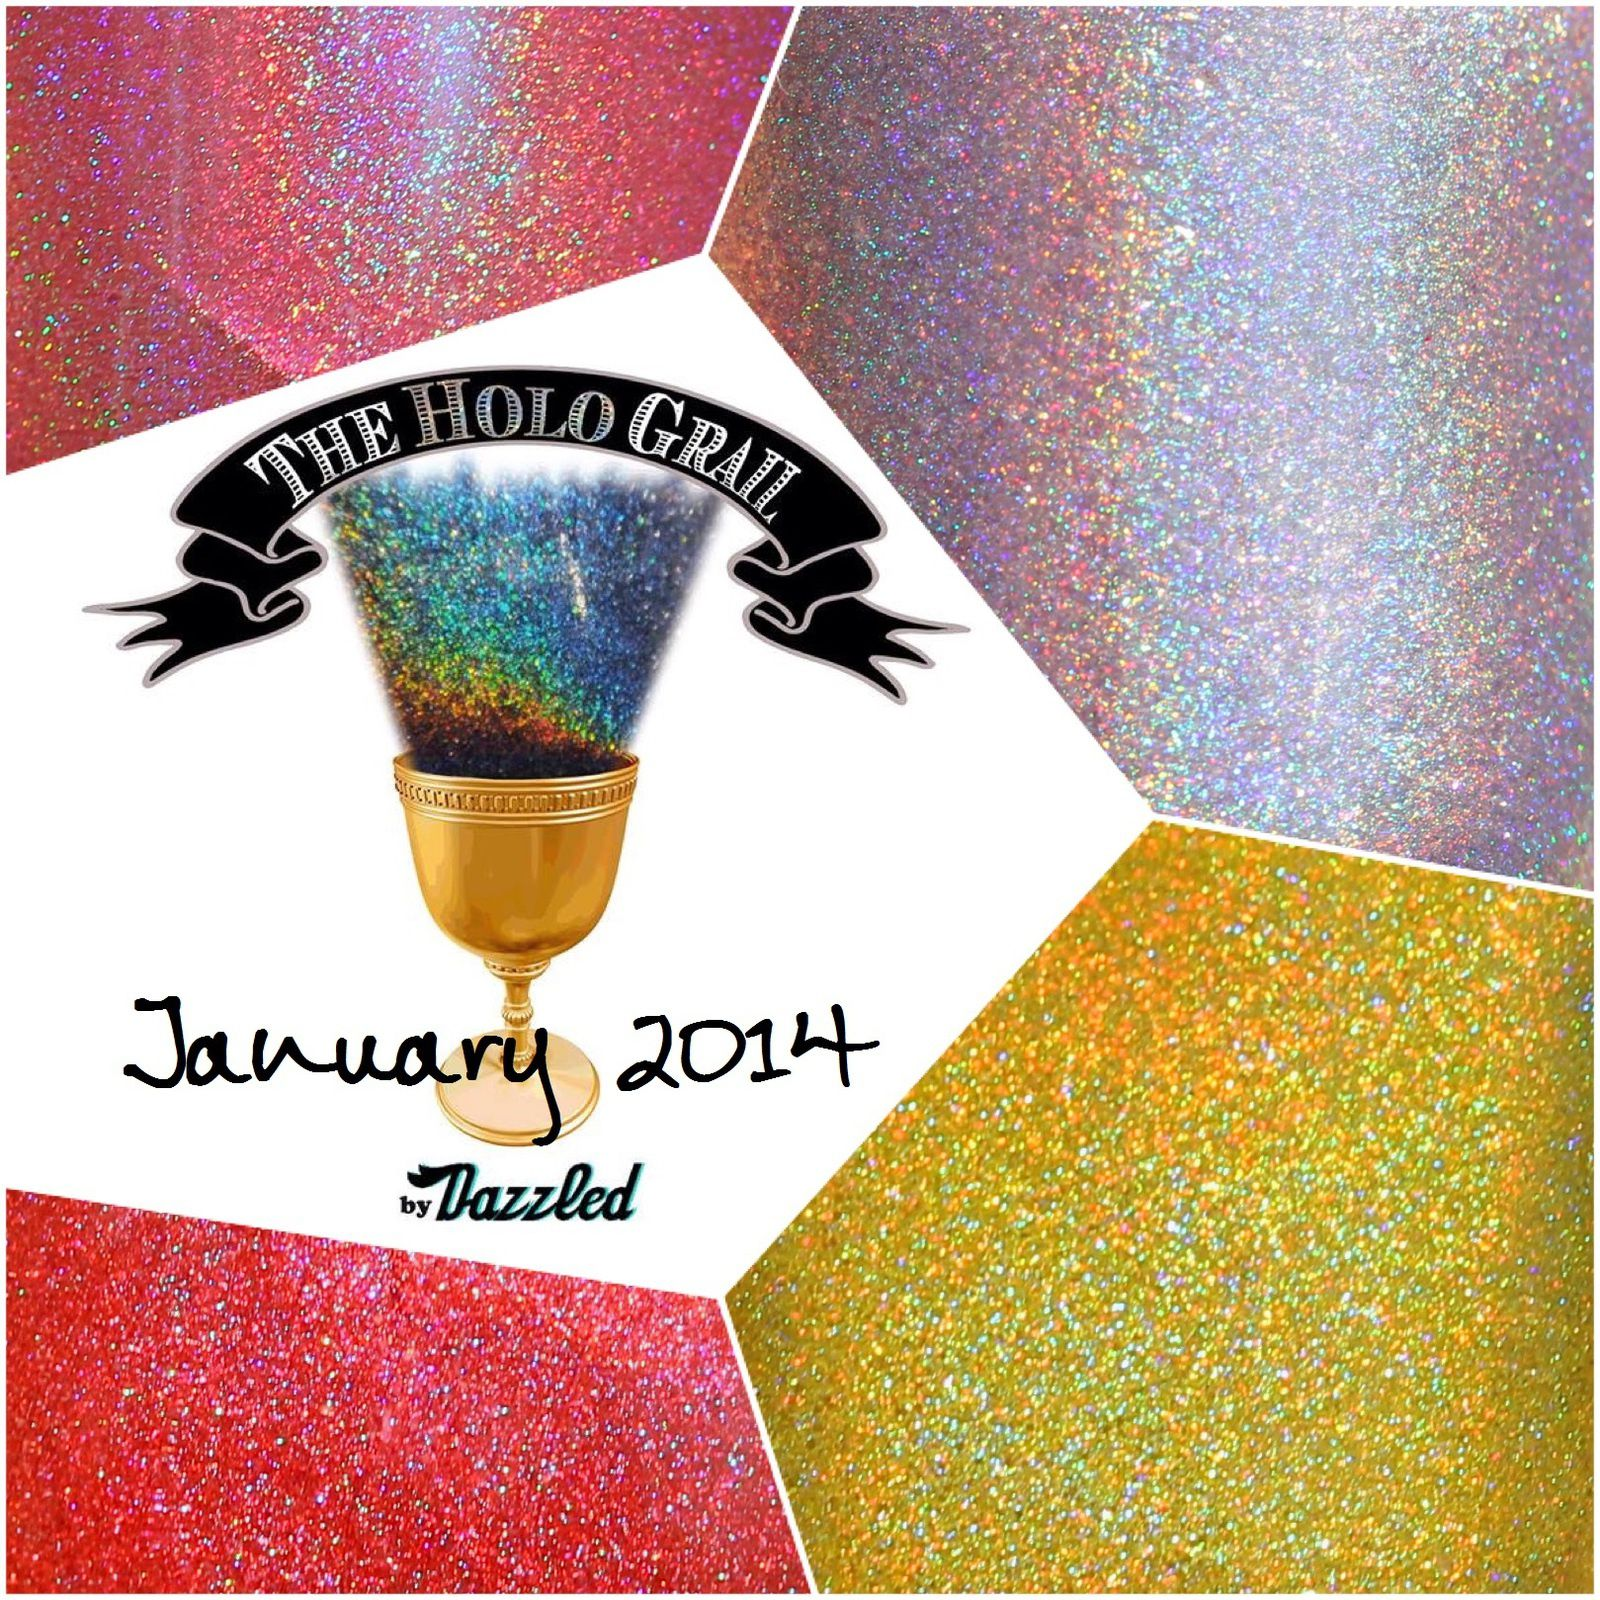 The Holo Grail Box by Dazzled - January 2015 - Make a Wish